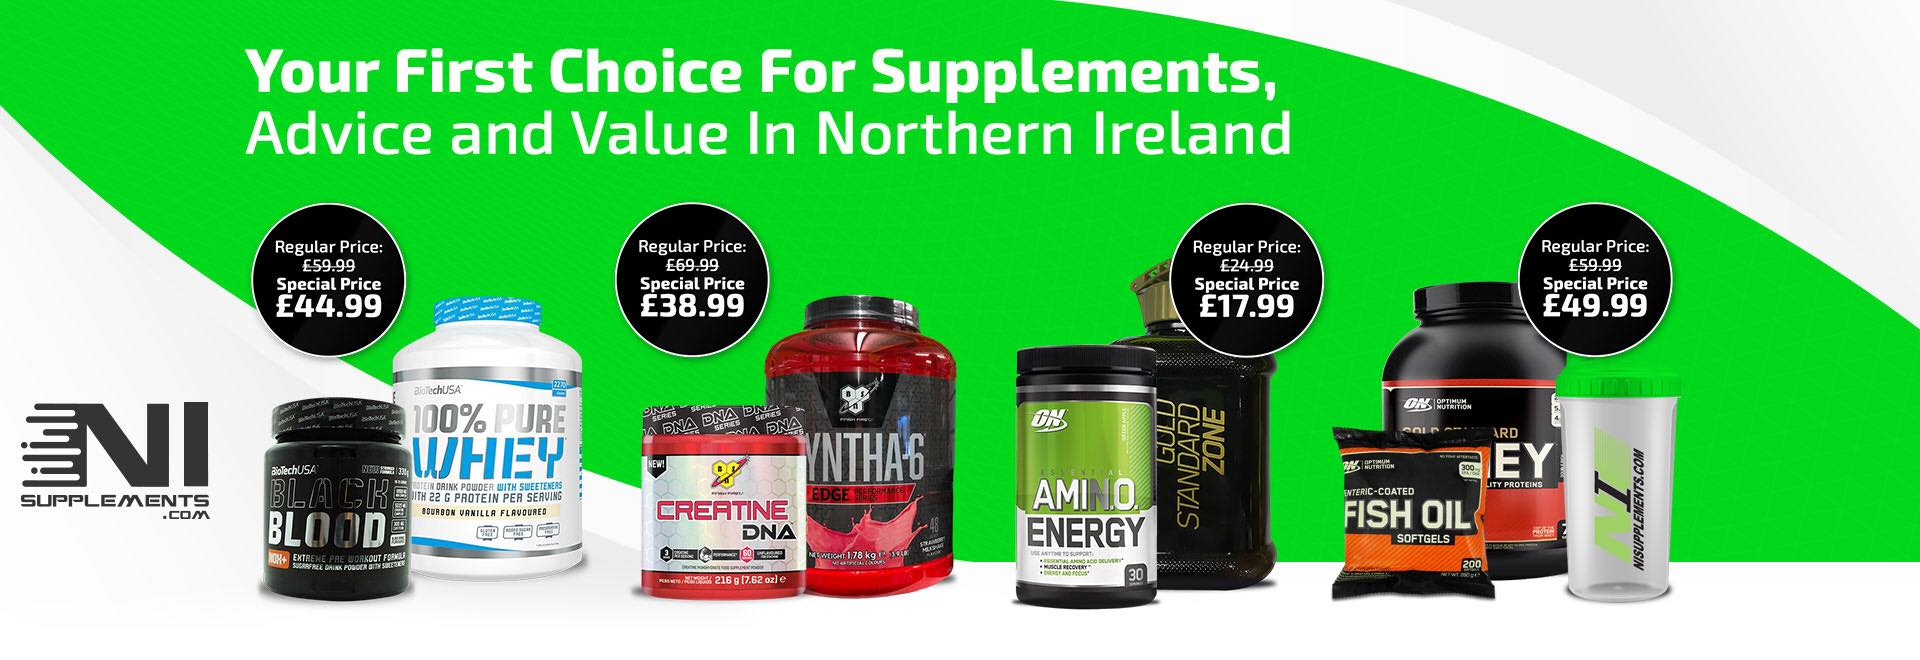 Visit NI Supplements